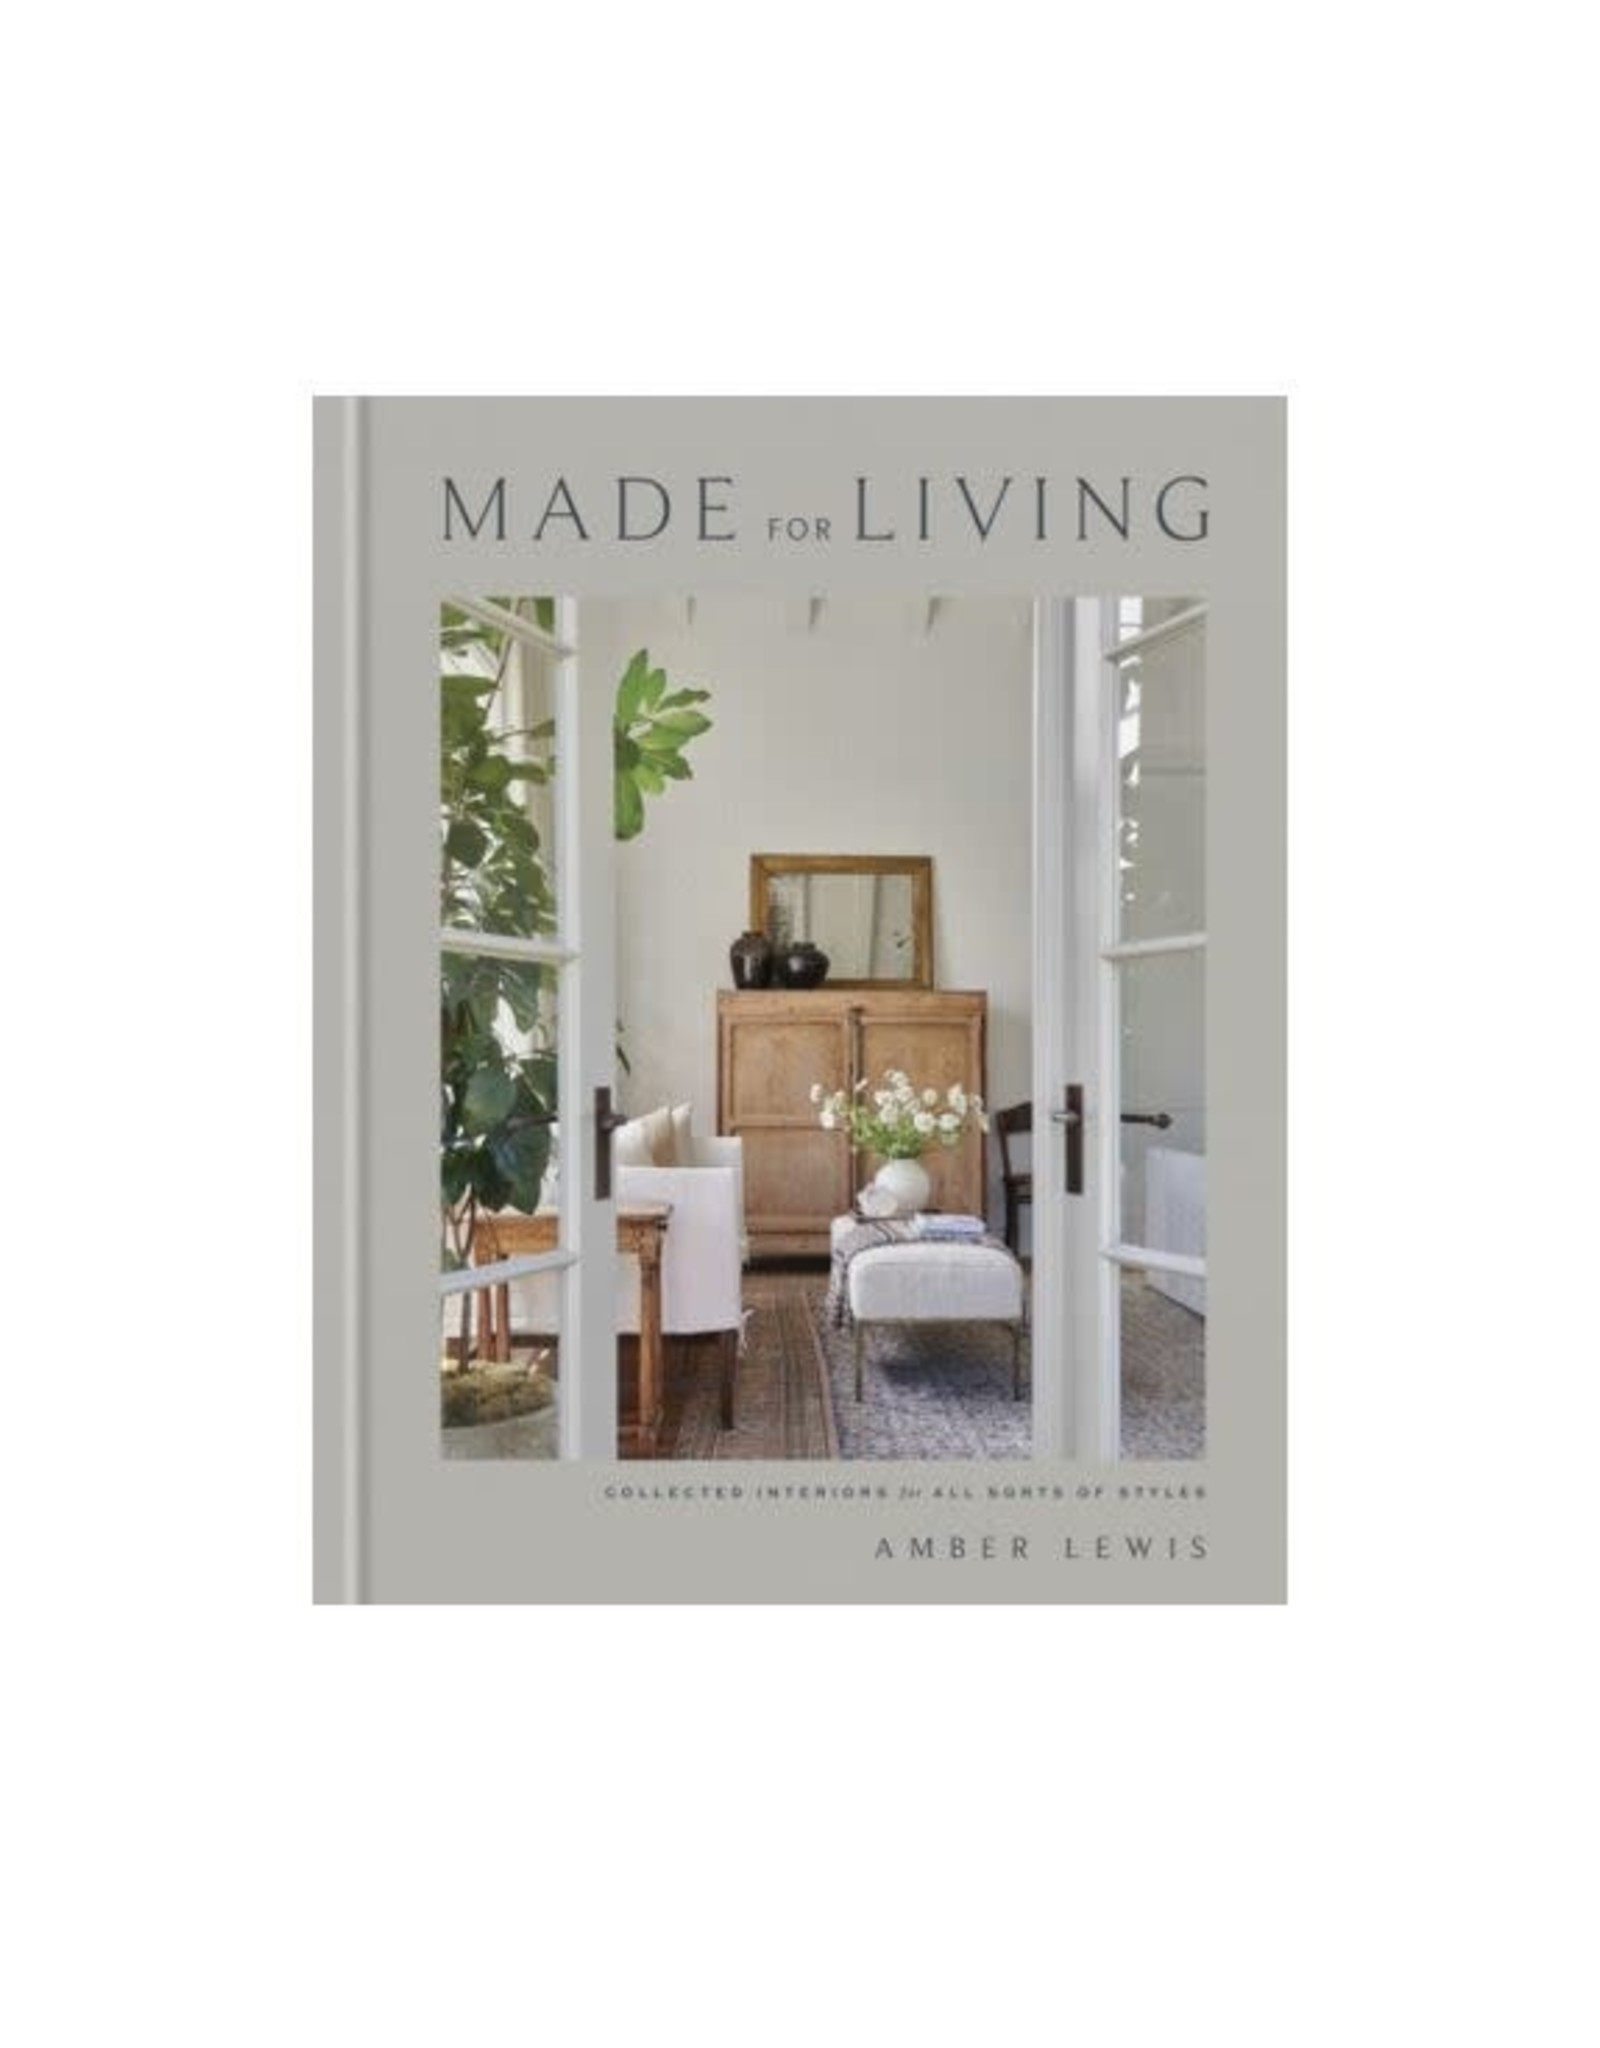 Made for Living by Amber Lewis - Version Anglaise